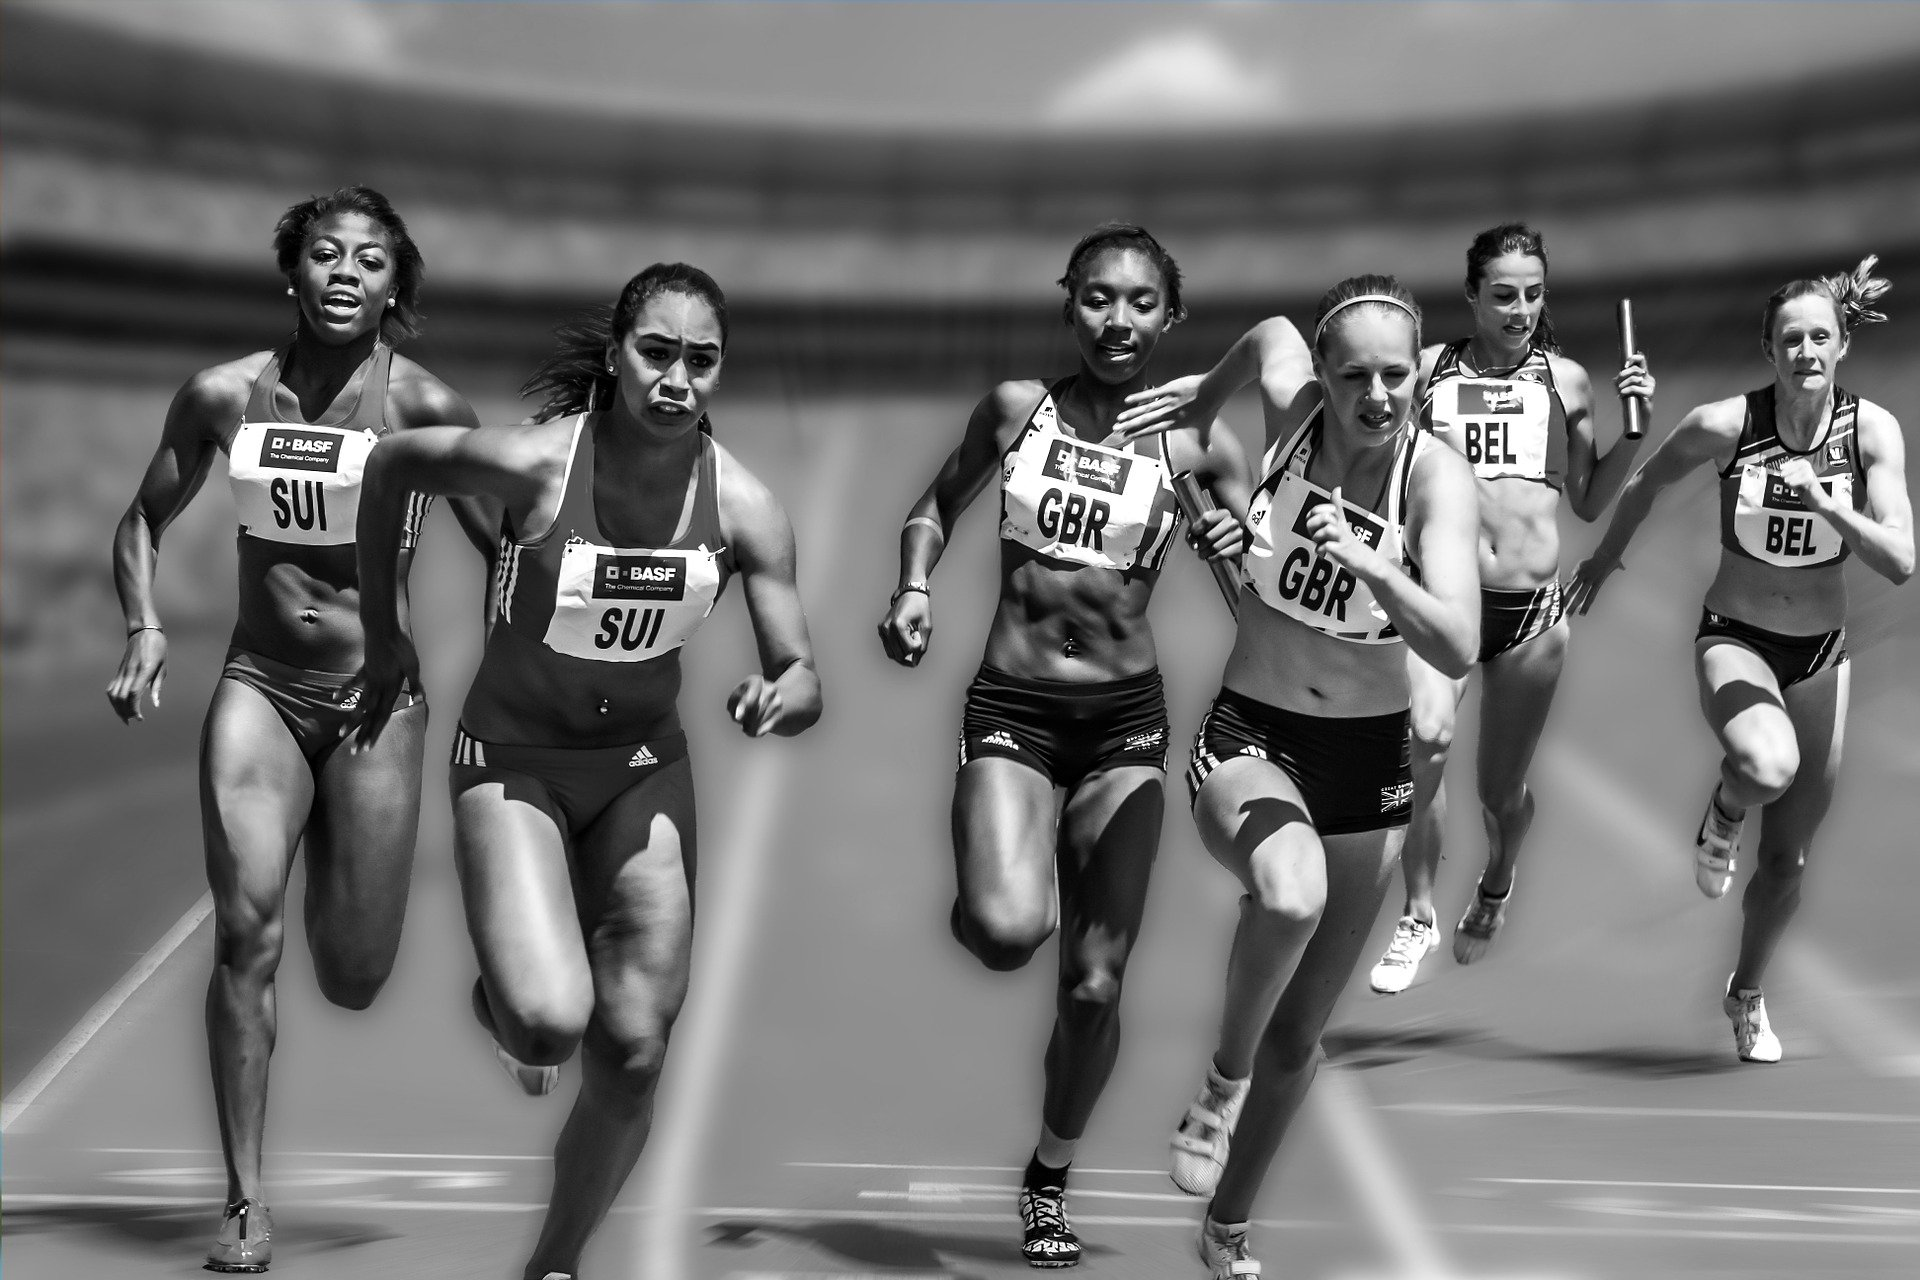 Athletes in a relay race in black and white as a part of competitive sports